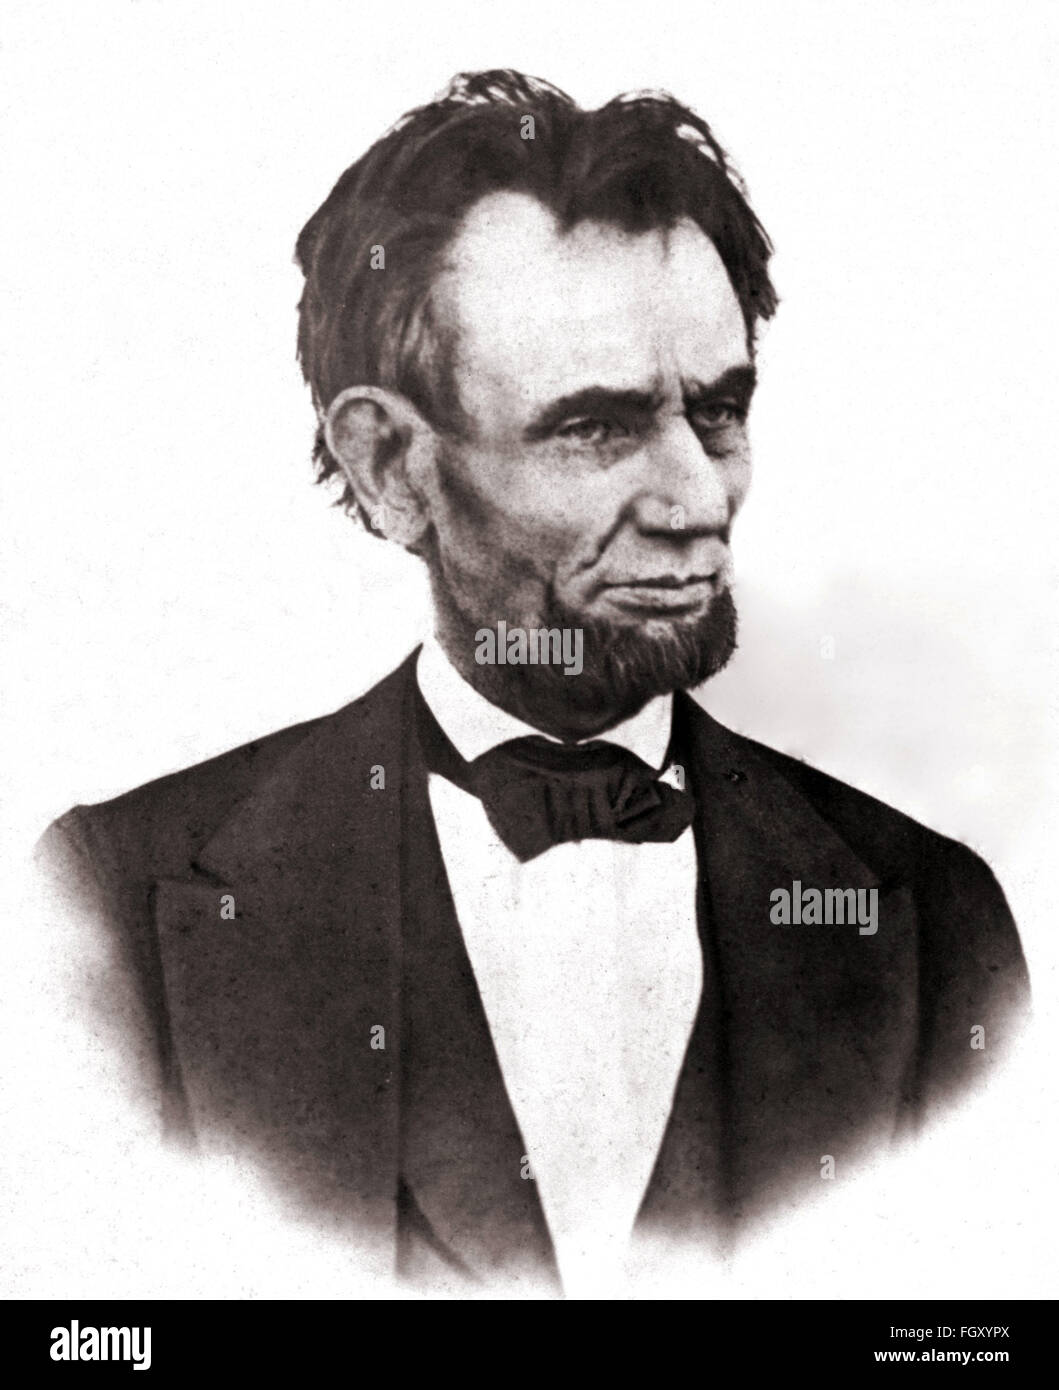 Photographic portrait of US President Abraham Lincoln in 1865 - Stock Image